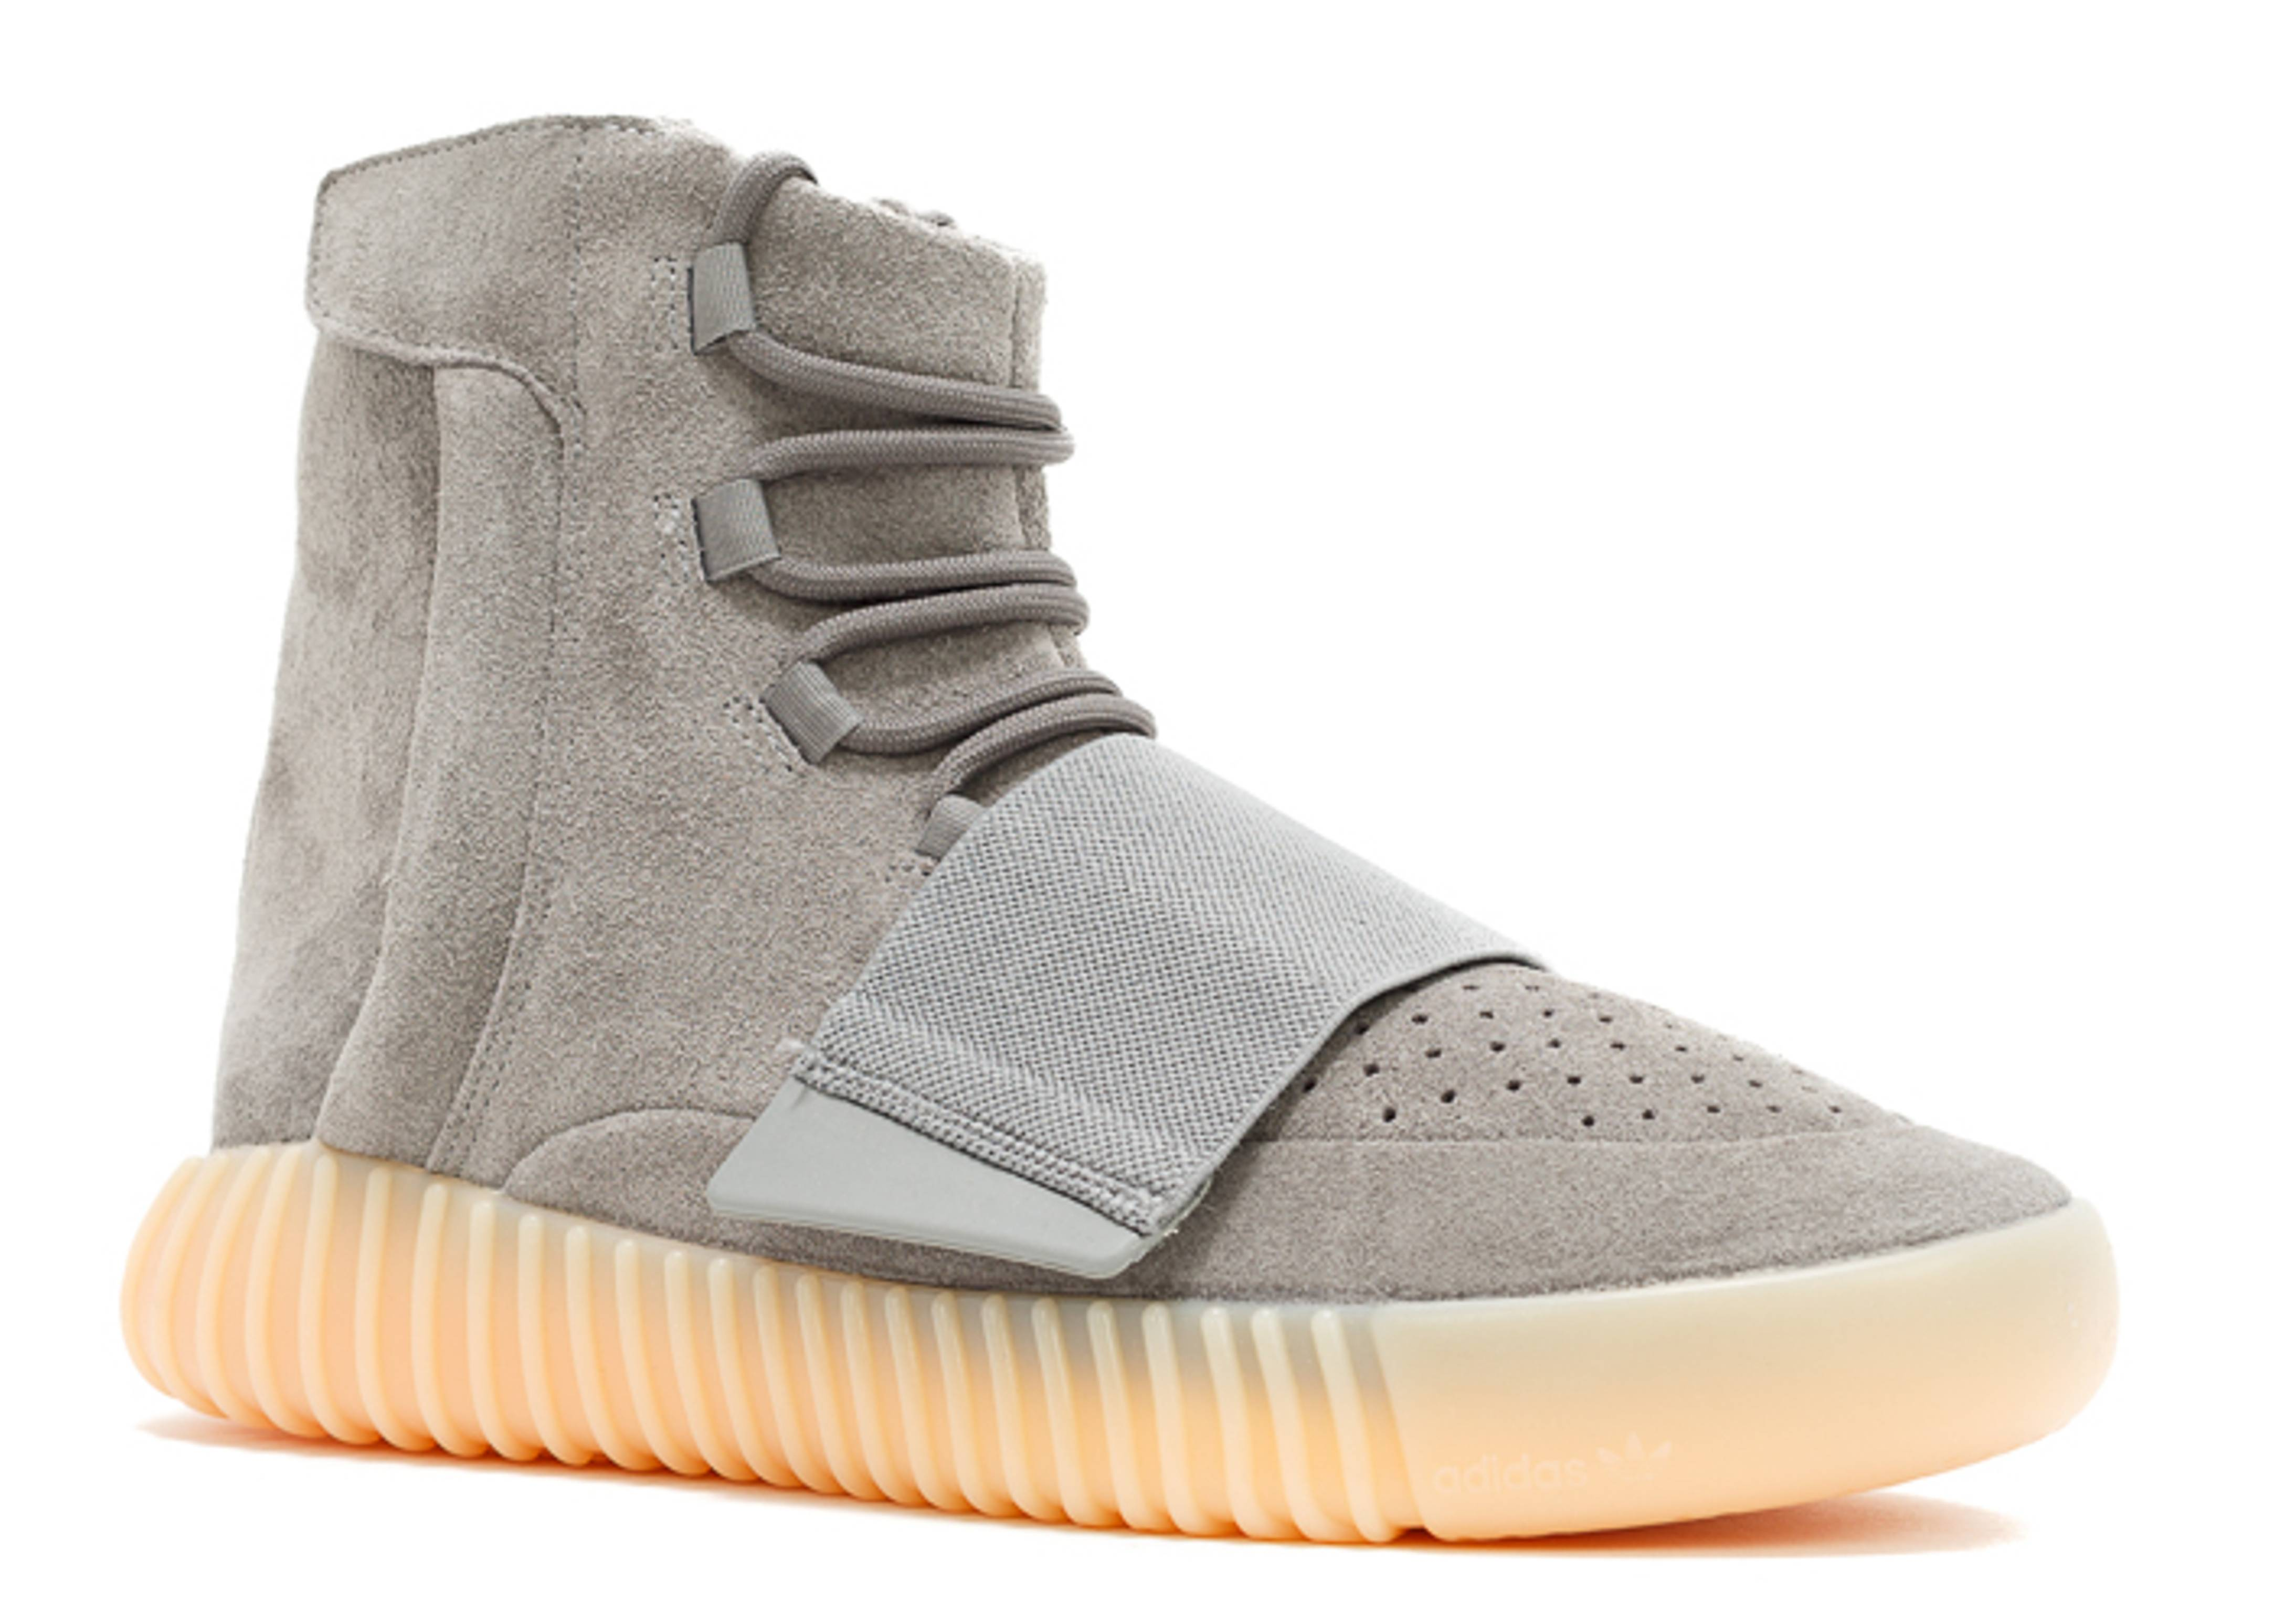 Adidas Yeezy Boost 750 Grey